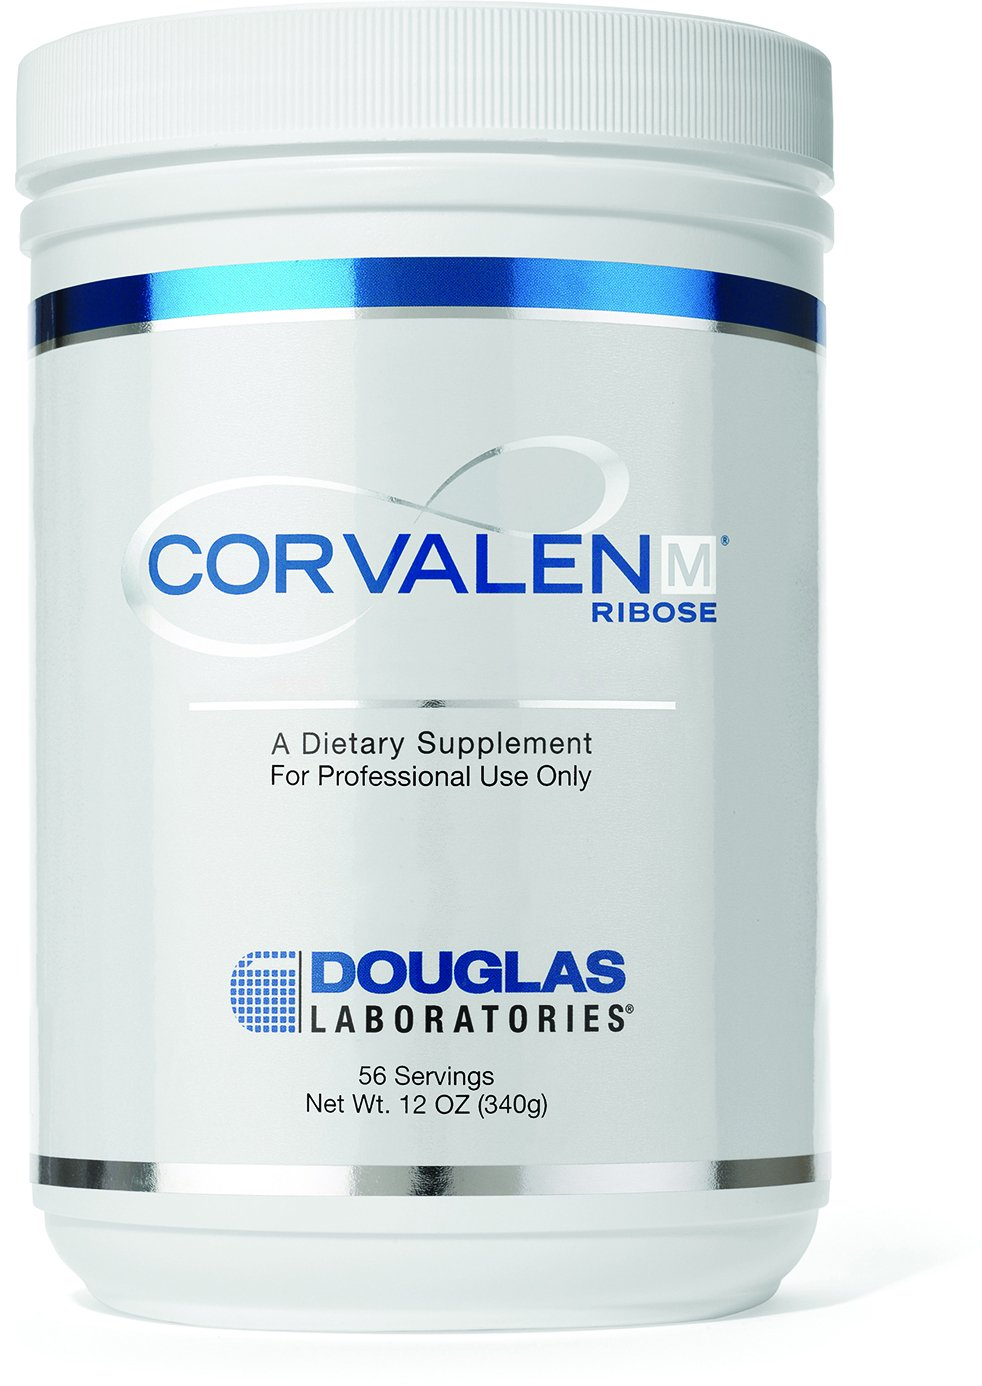 Douglas Laboratories® - Corvalen M® - Pure D-Ribose with Magnesium and Malic Acid for Core Energy* - 12 oz.